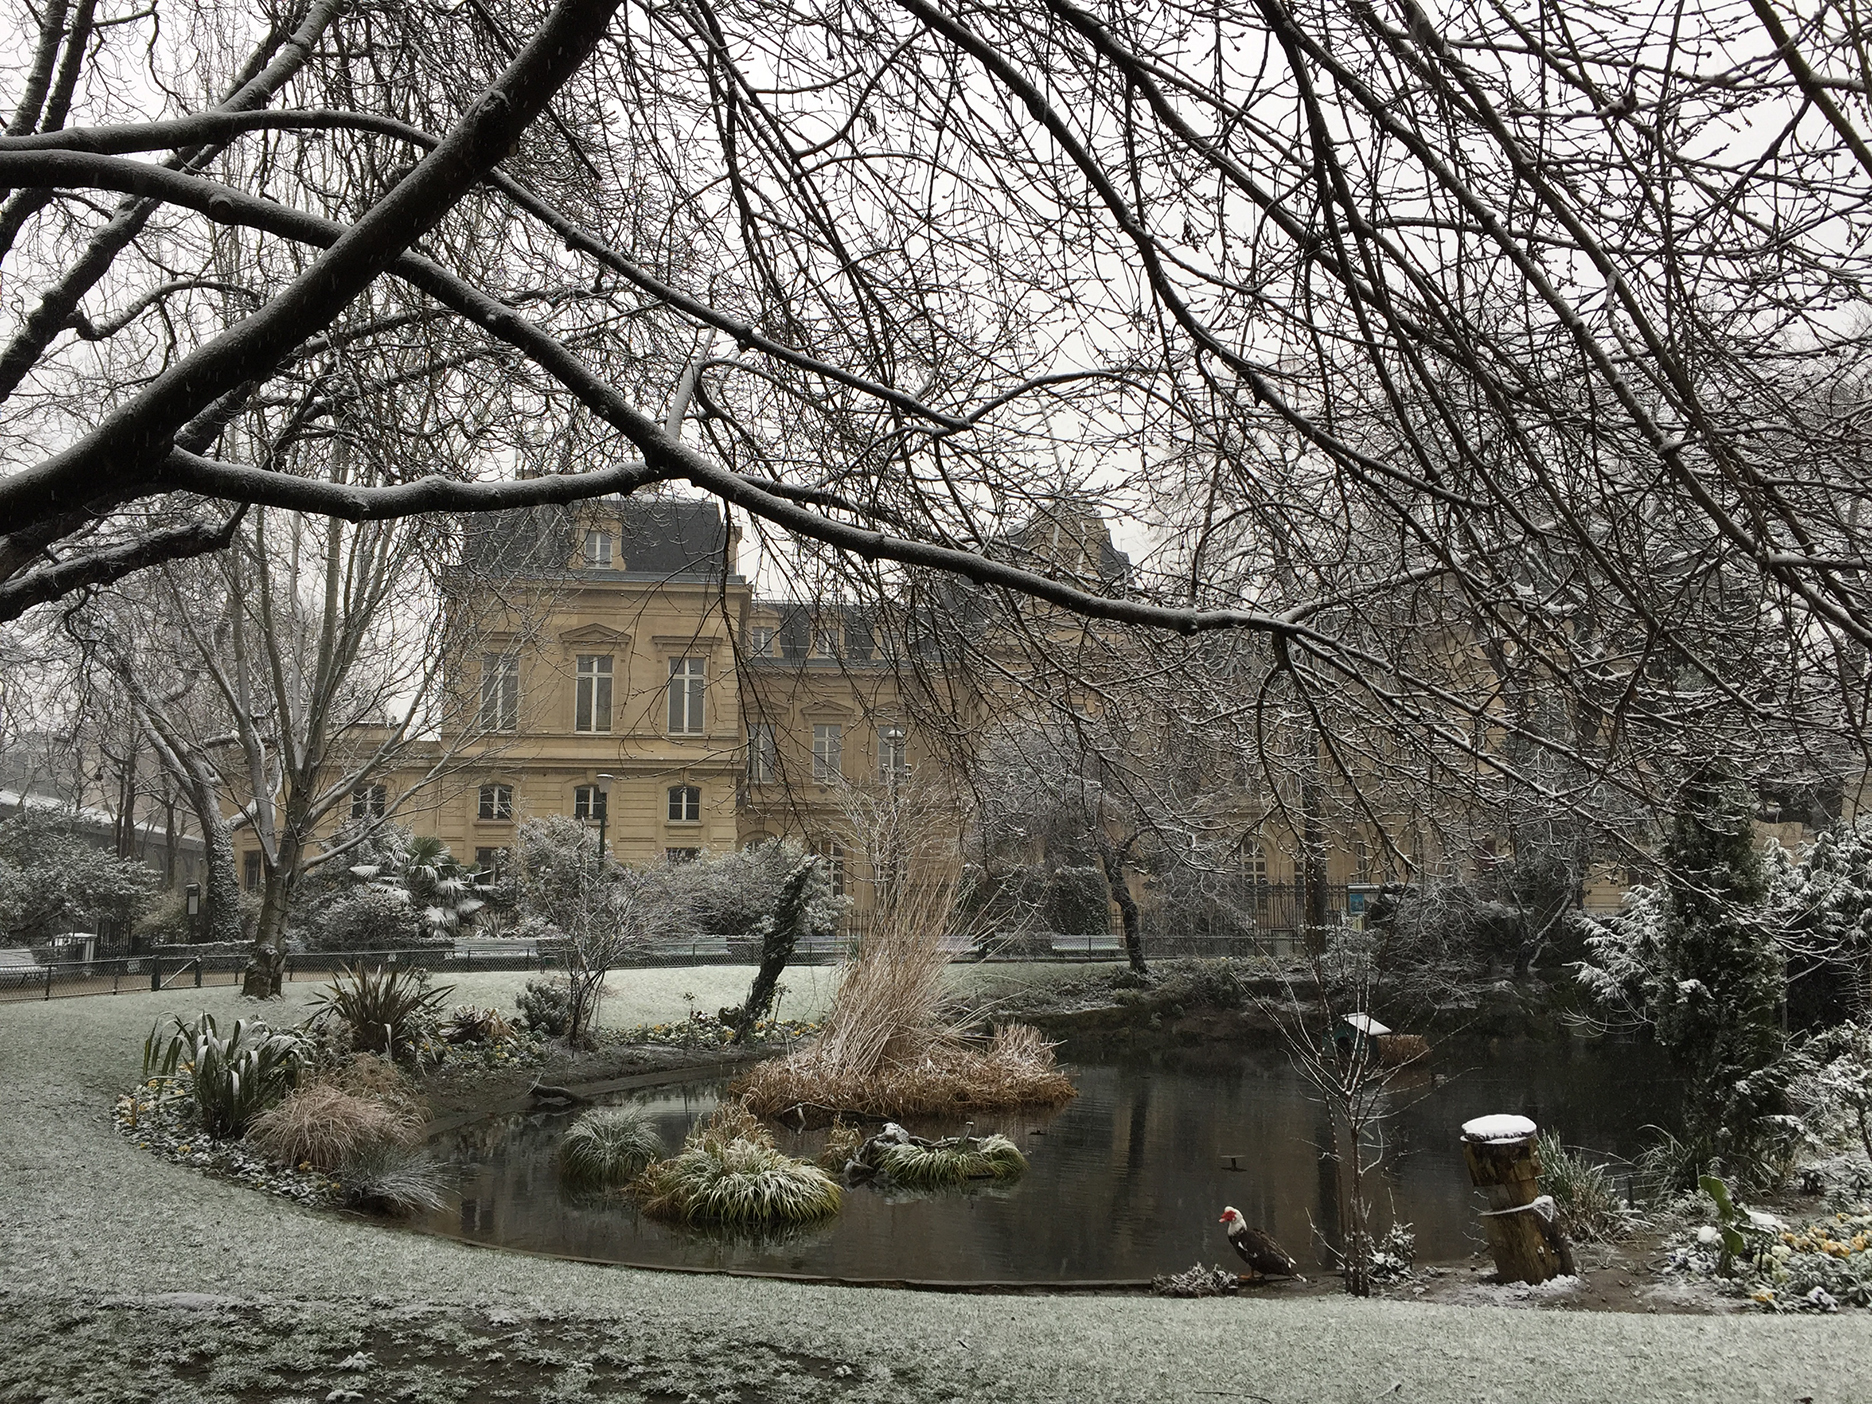 Mairie of the 3rd arrondissement. The duck was indecisive. Fearing cold water, perhaps?